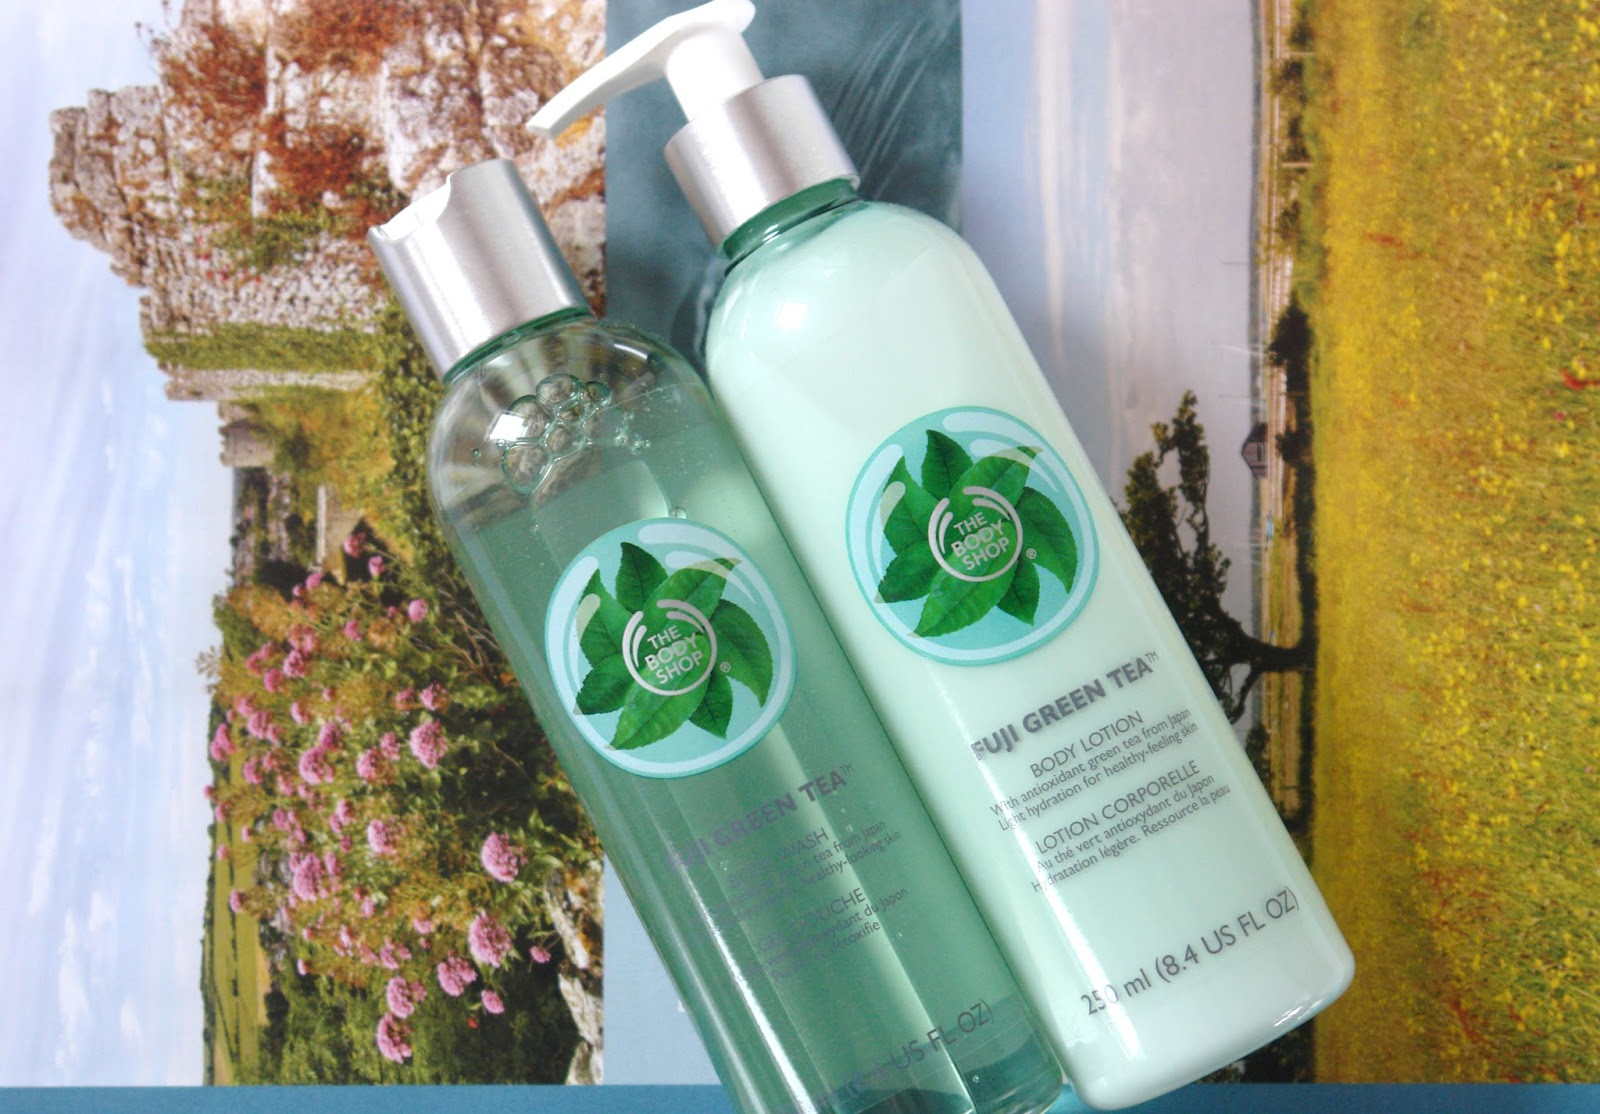 The Body Shop Fuji Green Tea range, Fuji Green Tea Body Wash, Fuji Green Tea Body Lotion, The Body Shop, beauty, review,